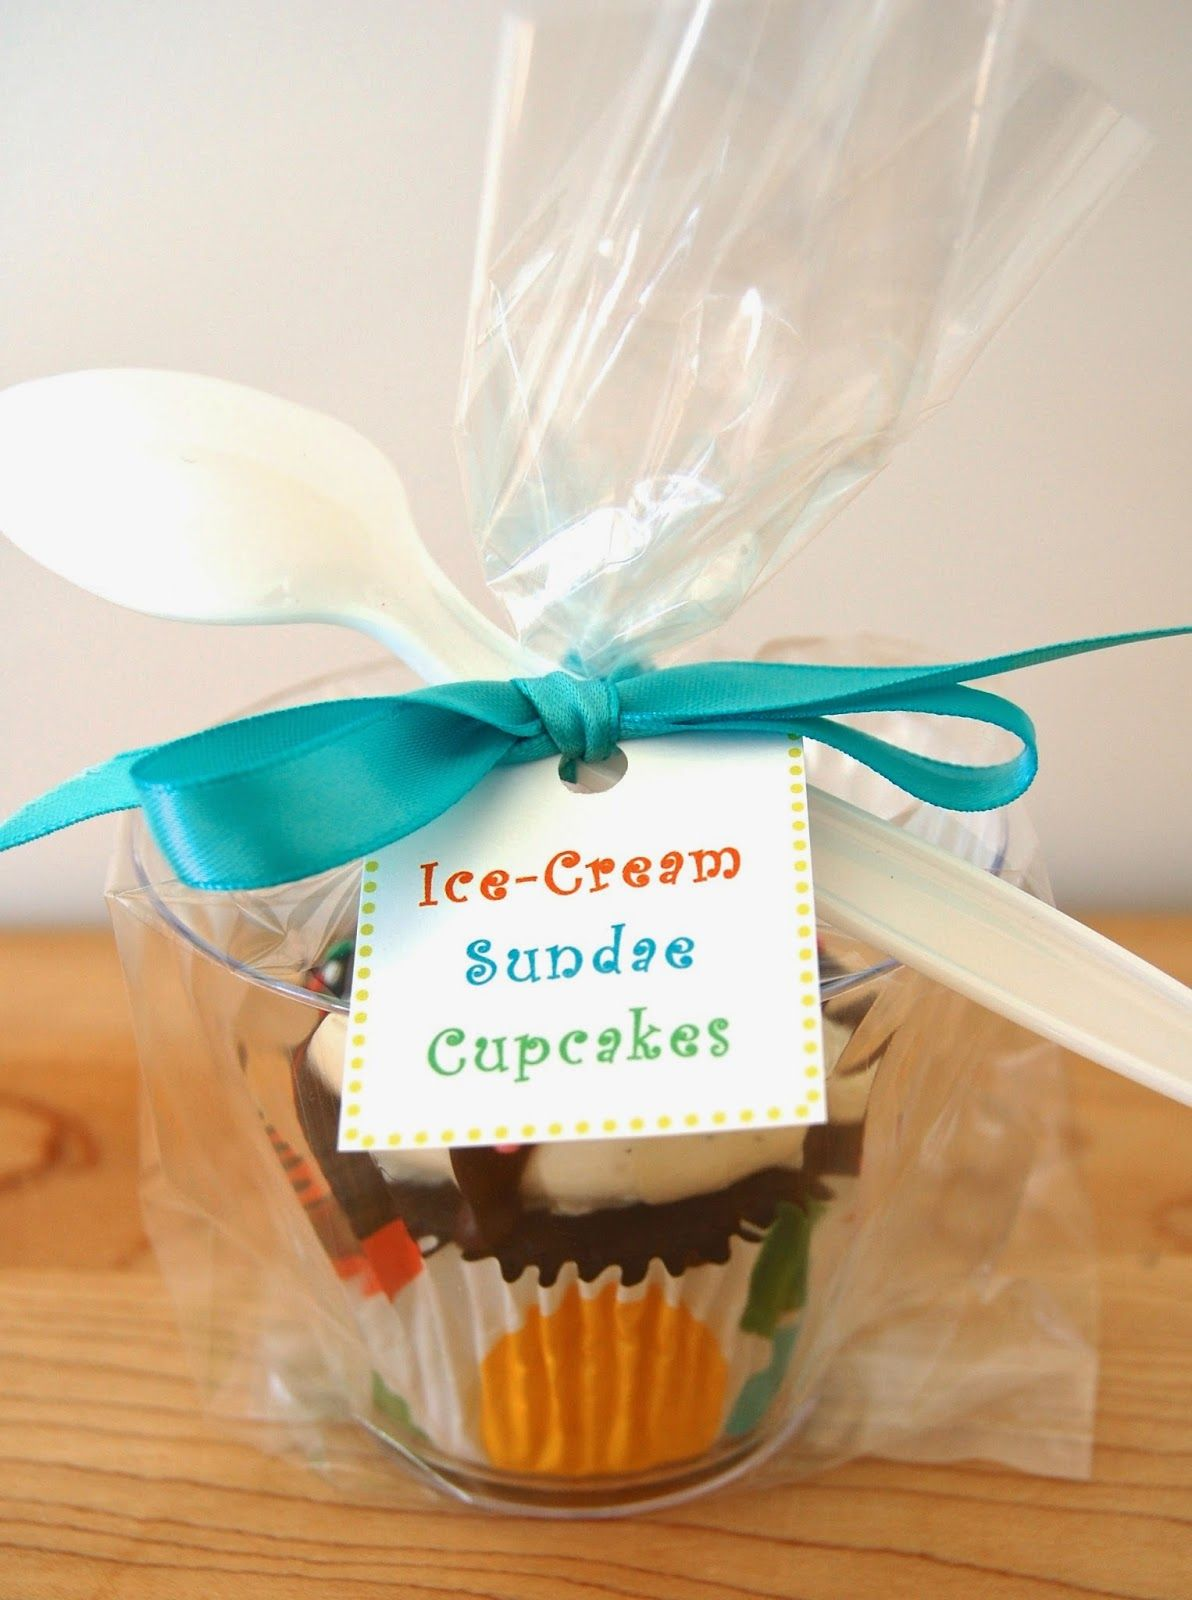 packaging cupcakes for a bake sale